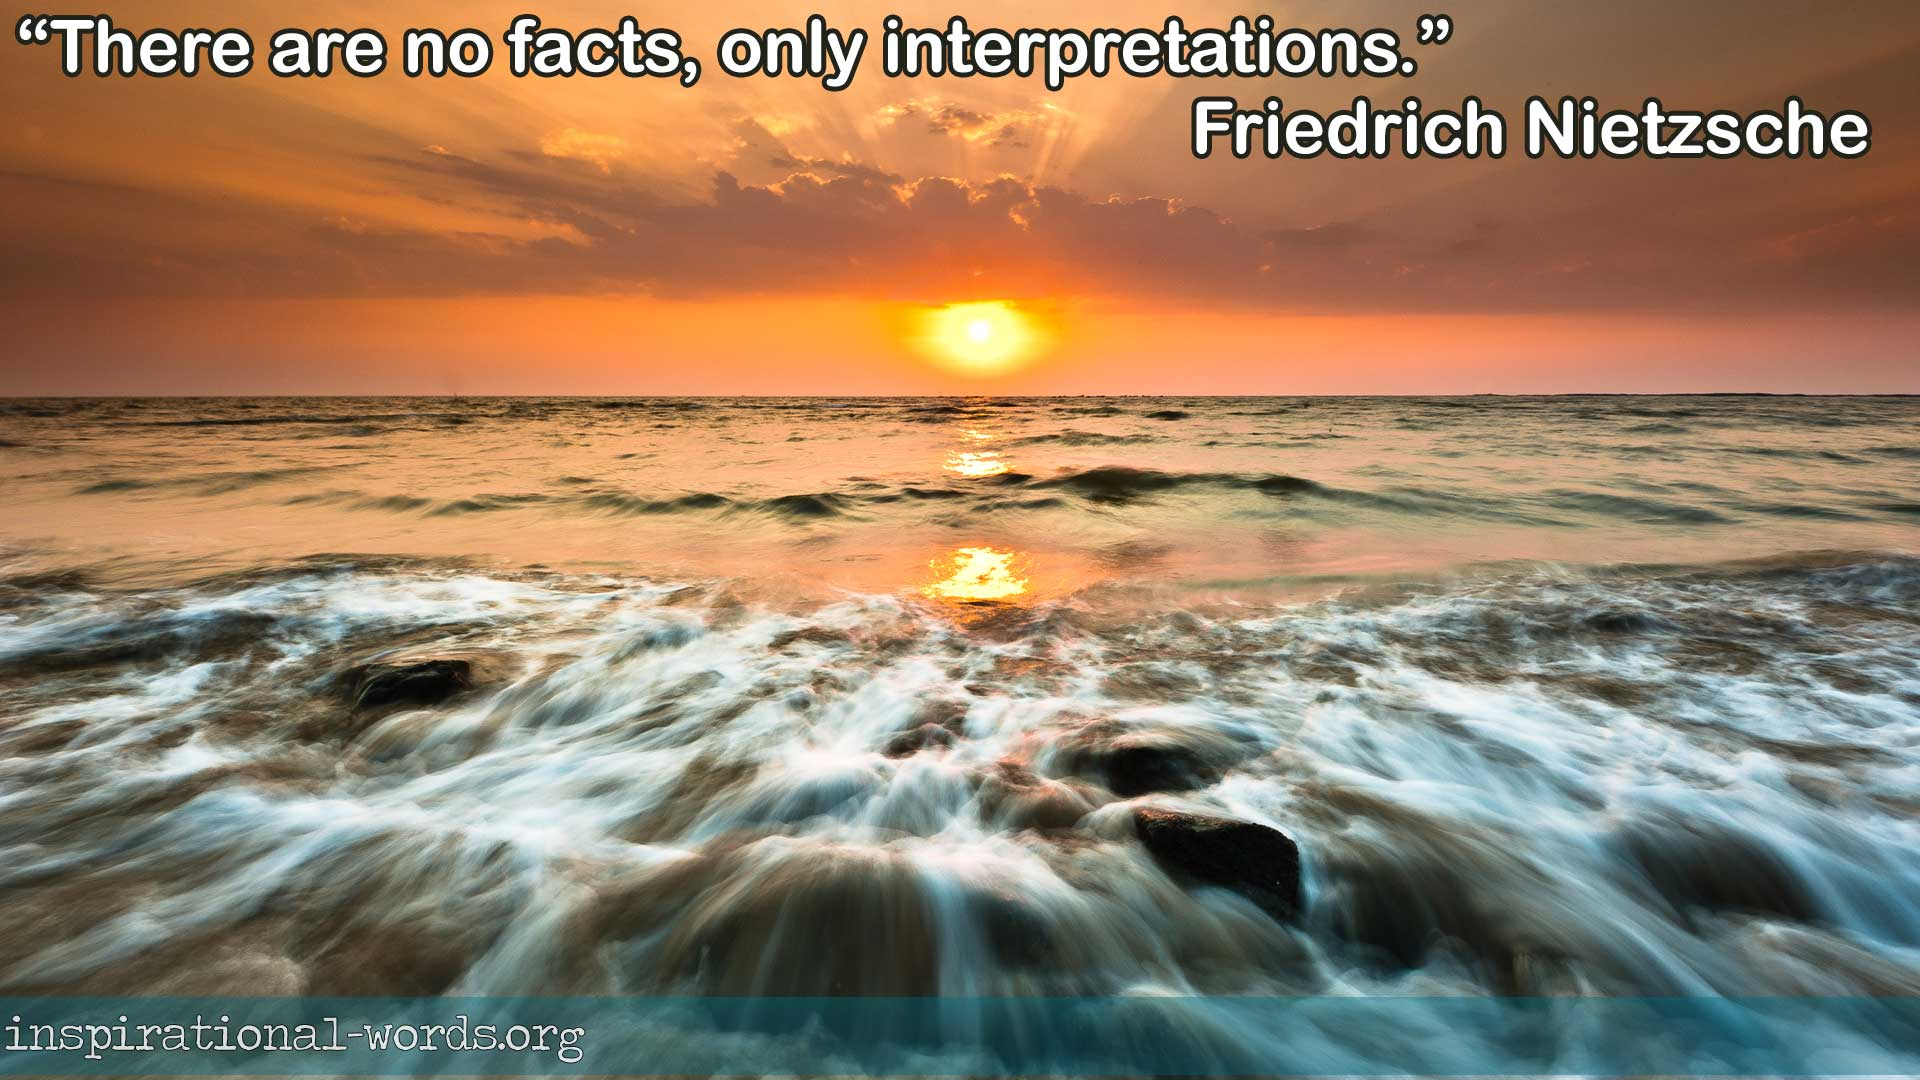 Friedrich Nietzsche inspirational wallpaper